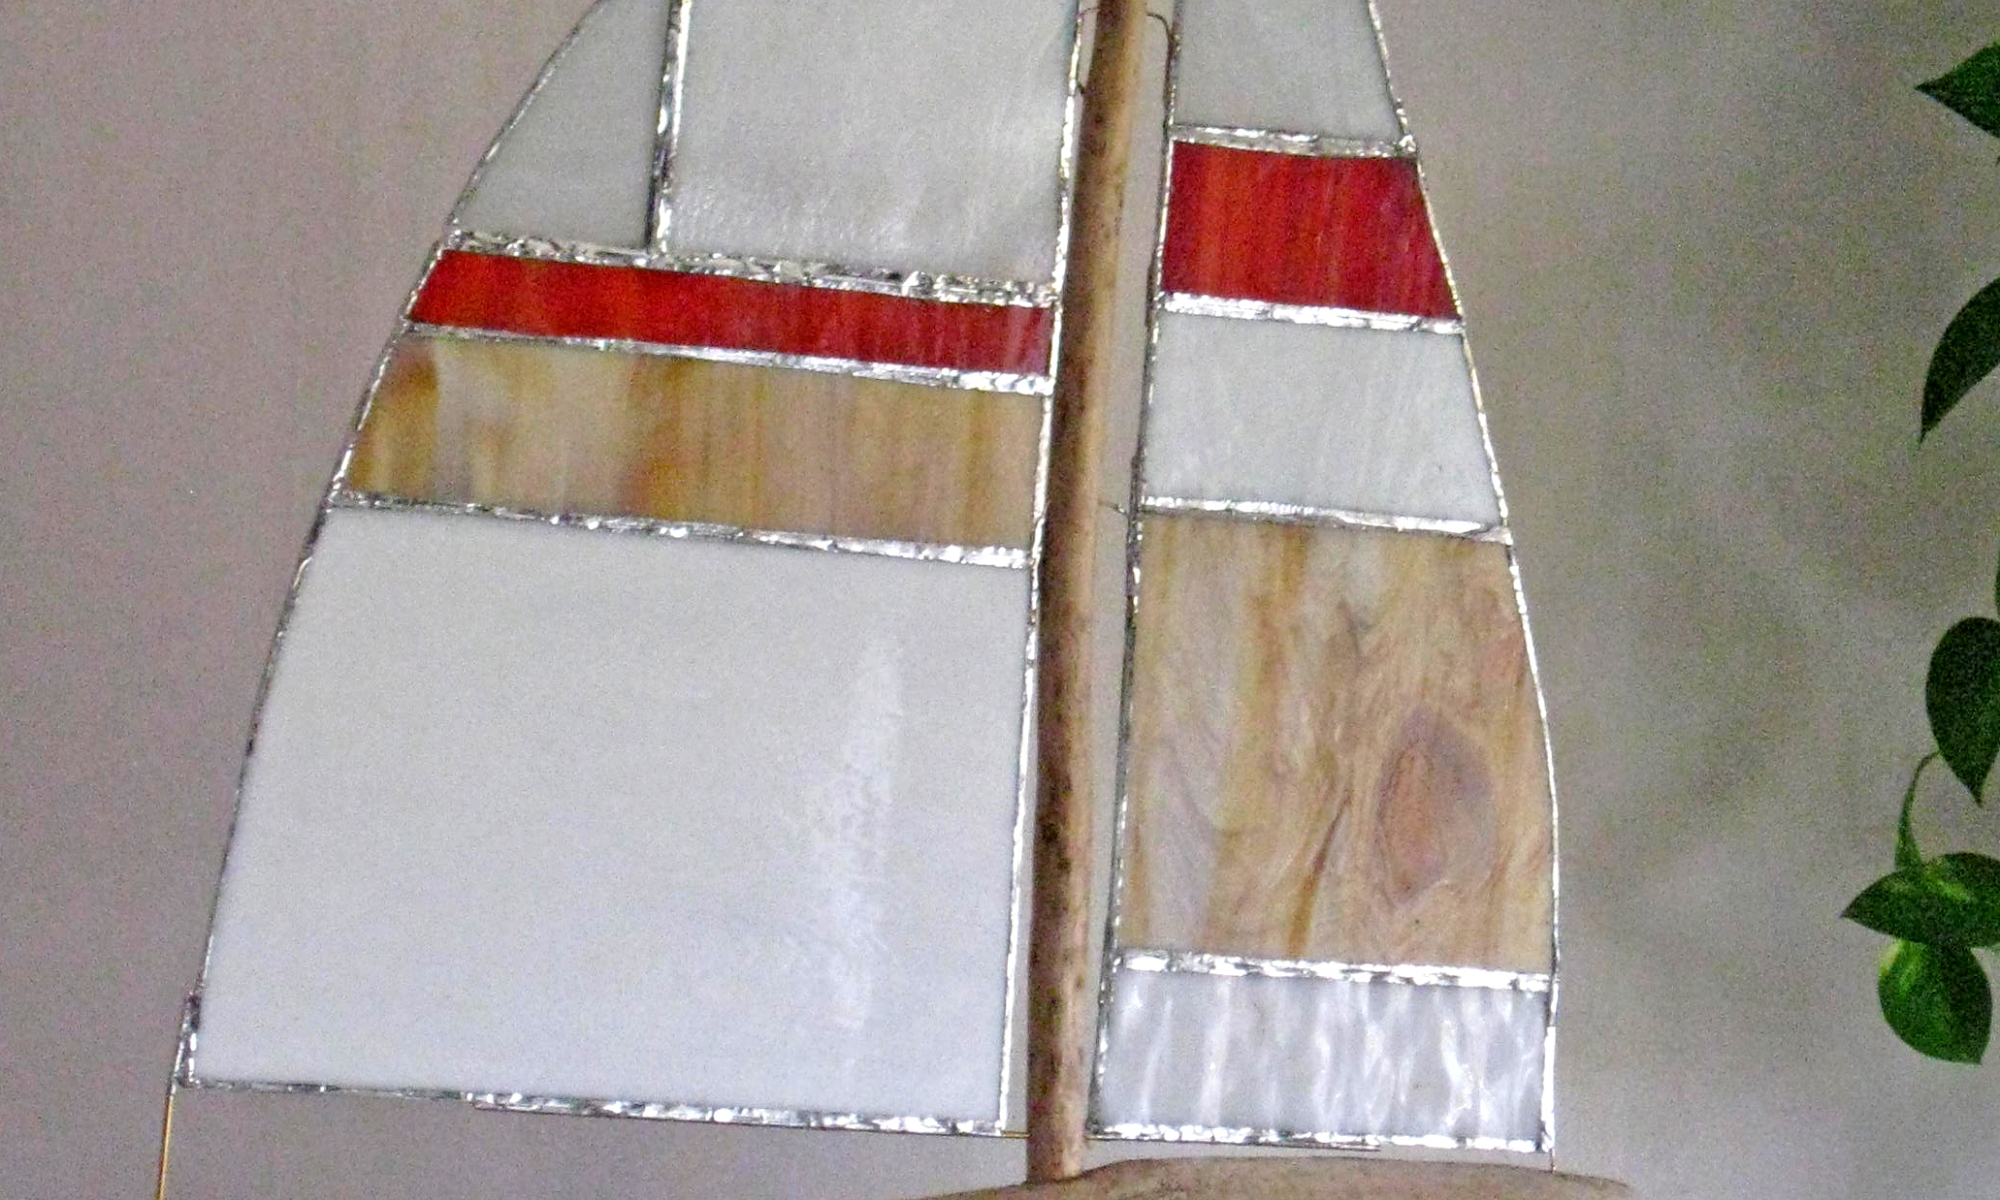 Segelboot aus Tiffany glas